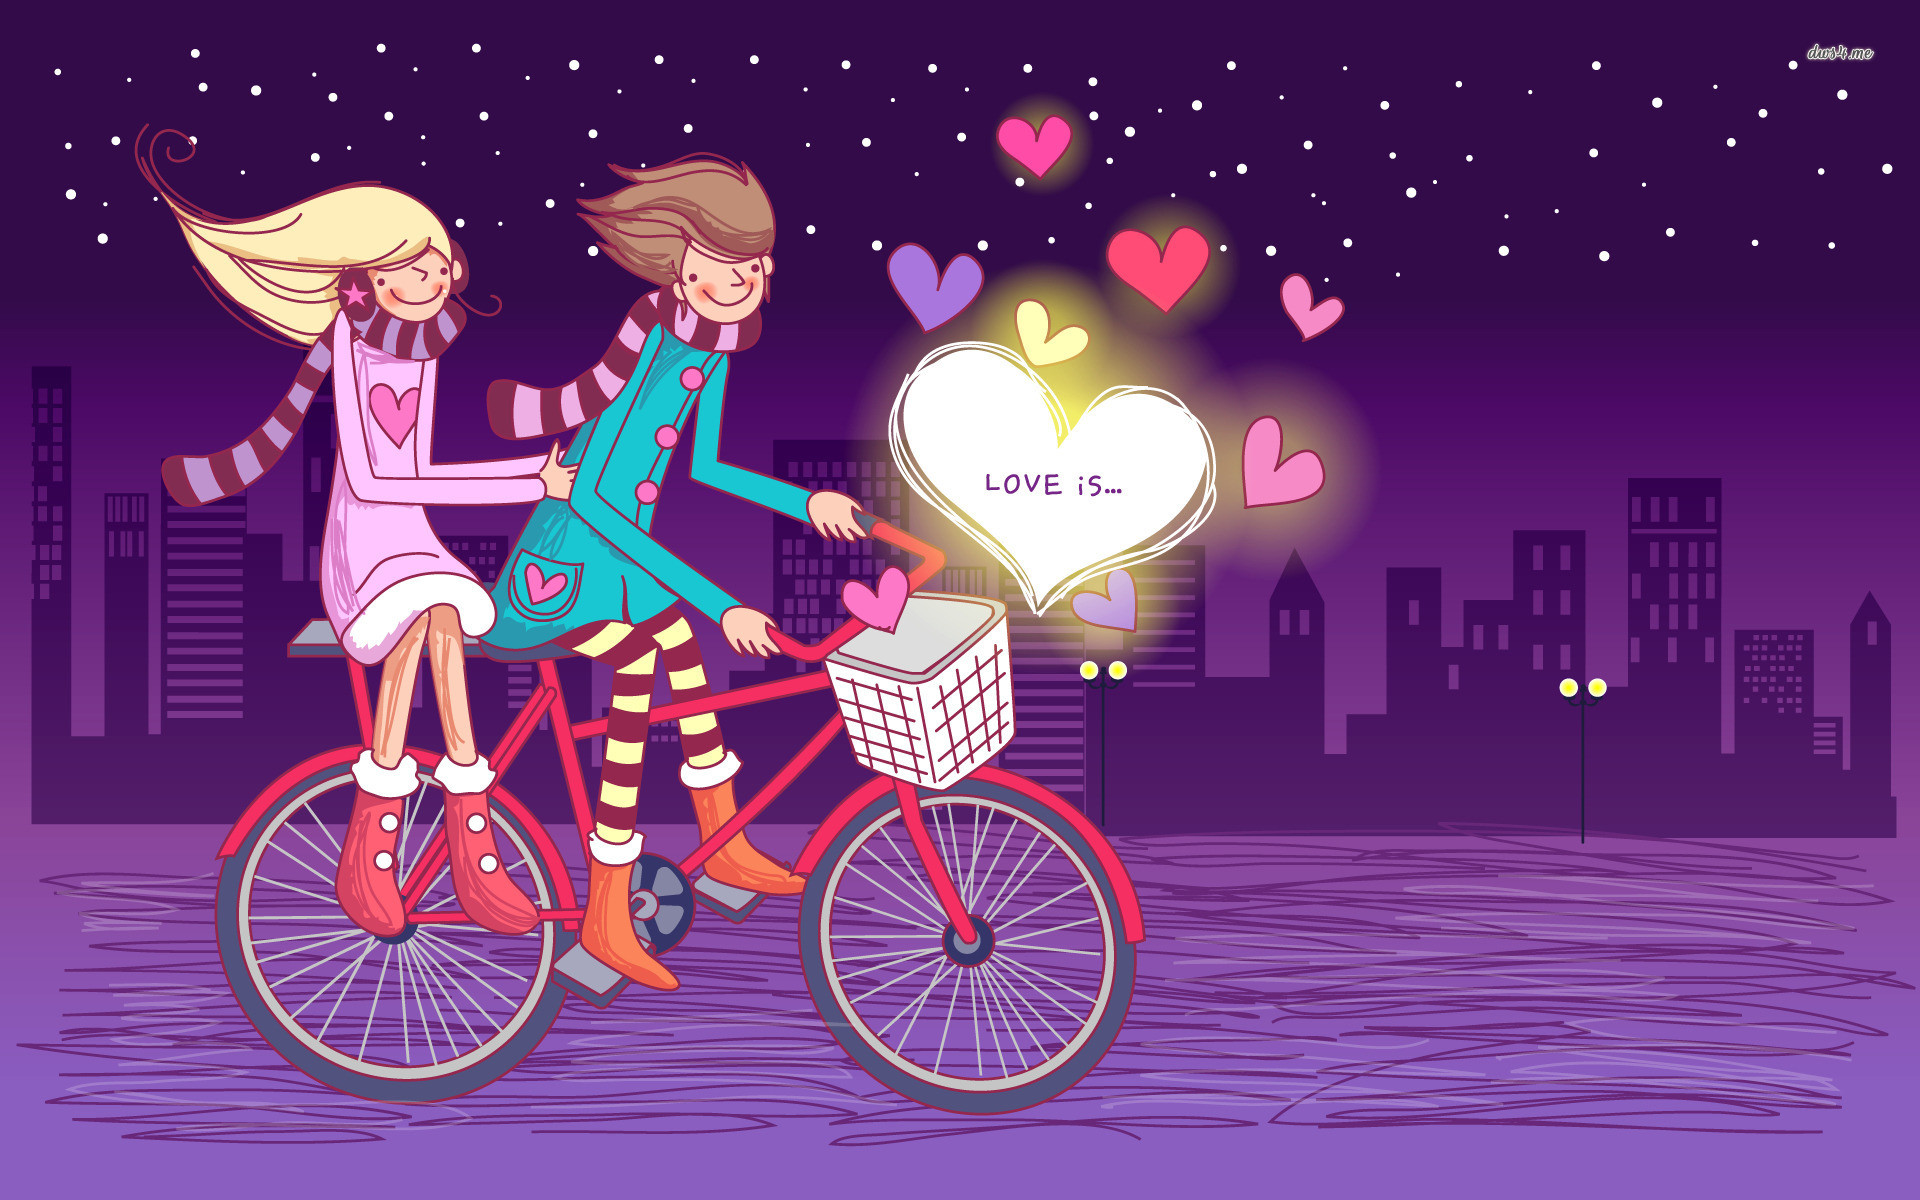 1920x1200 valentines day animated cartoon wallpaper free hd desktop